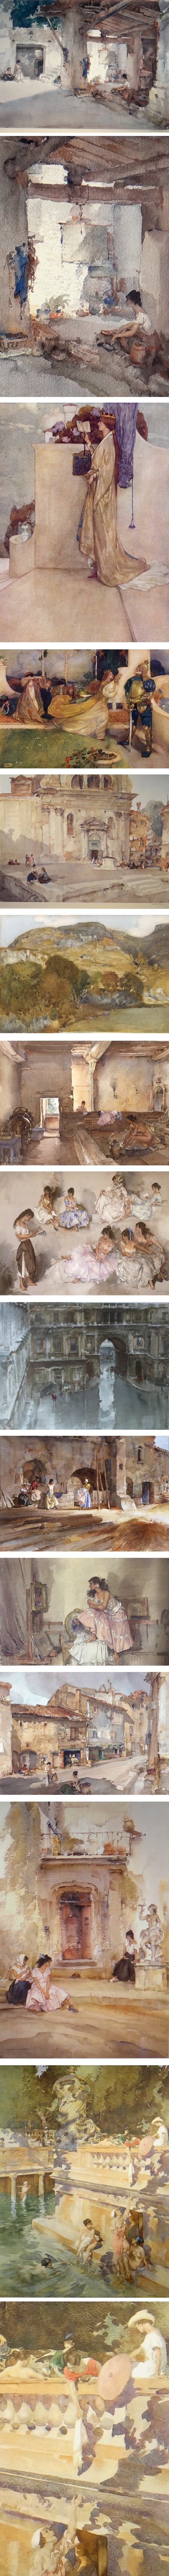 William Russell Flint, watercolors and illustrations